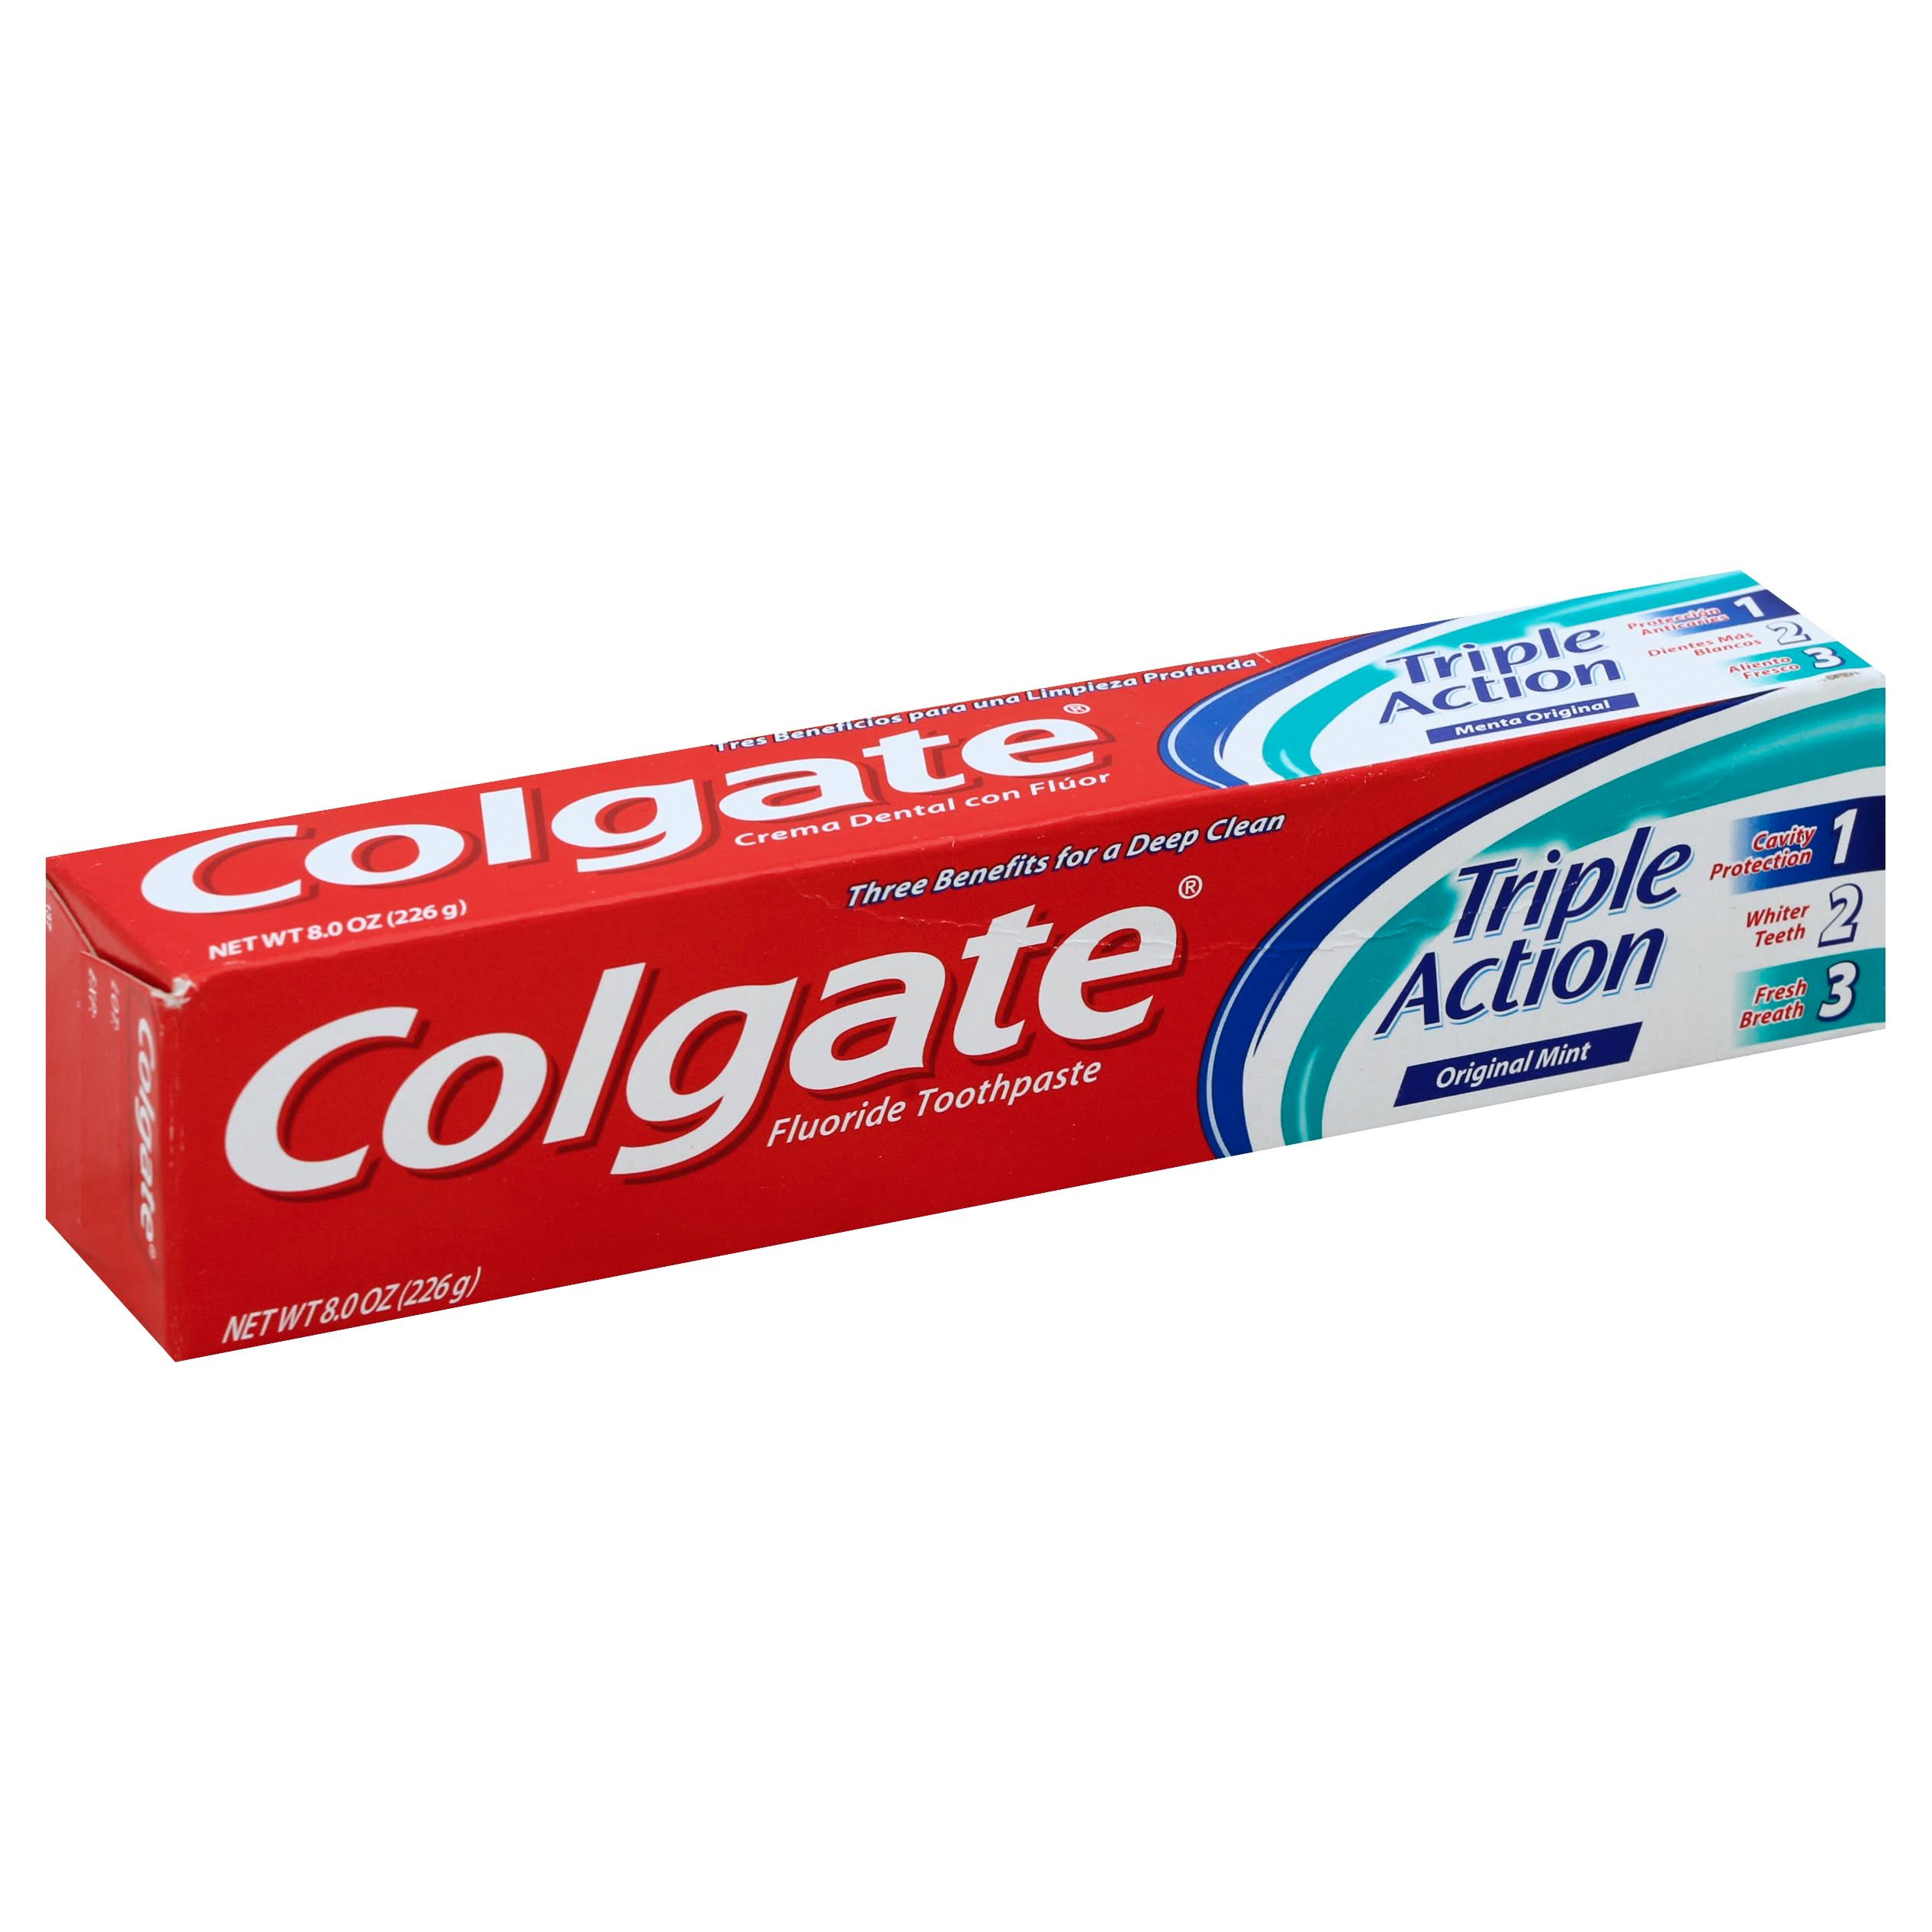 Colgate Triple Action Toothpaste - 8oz